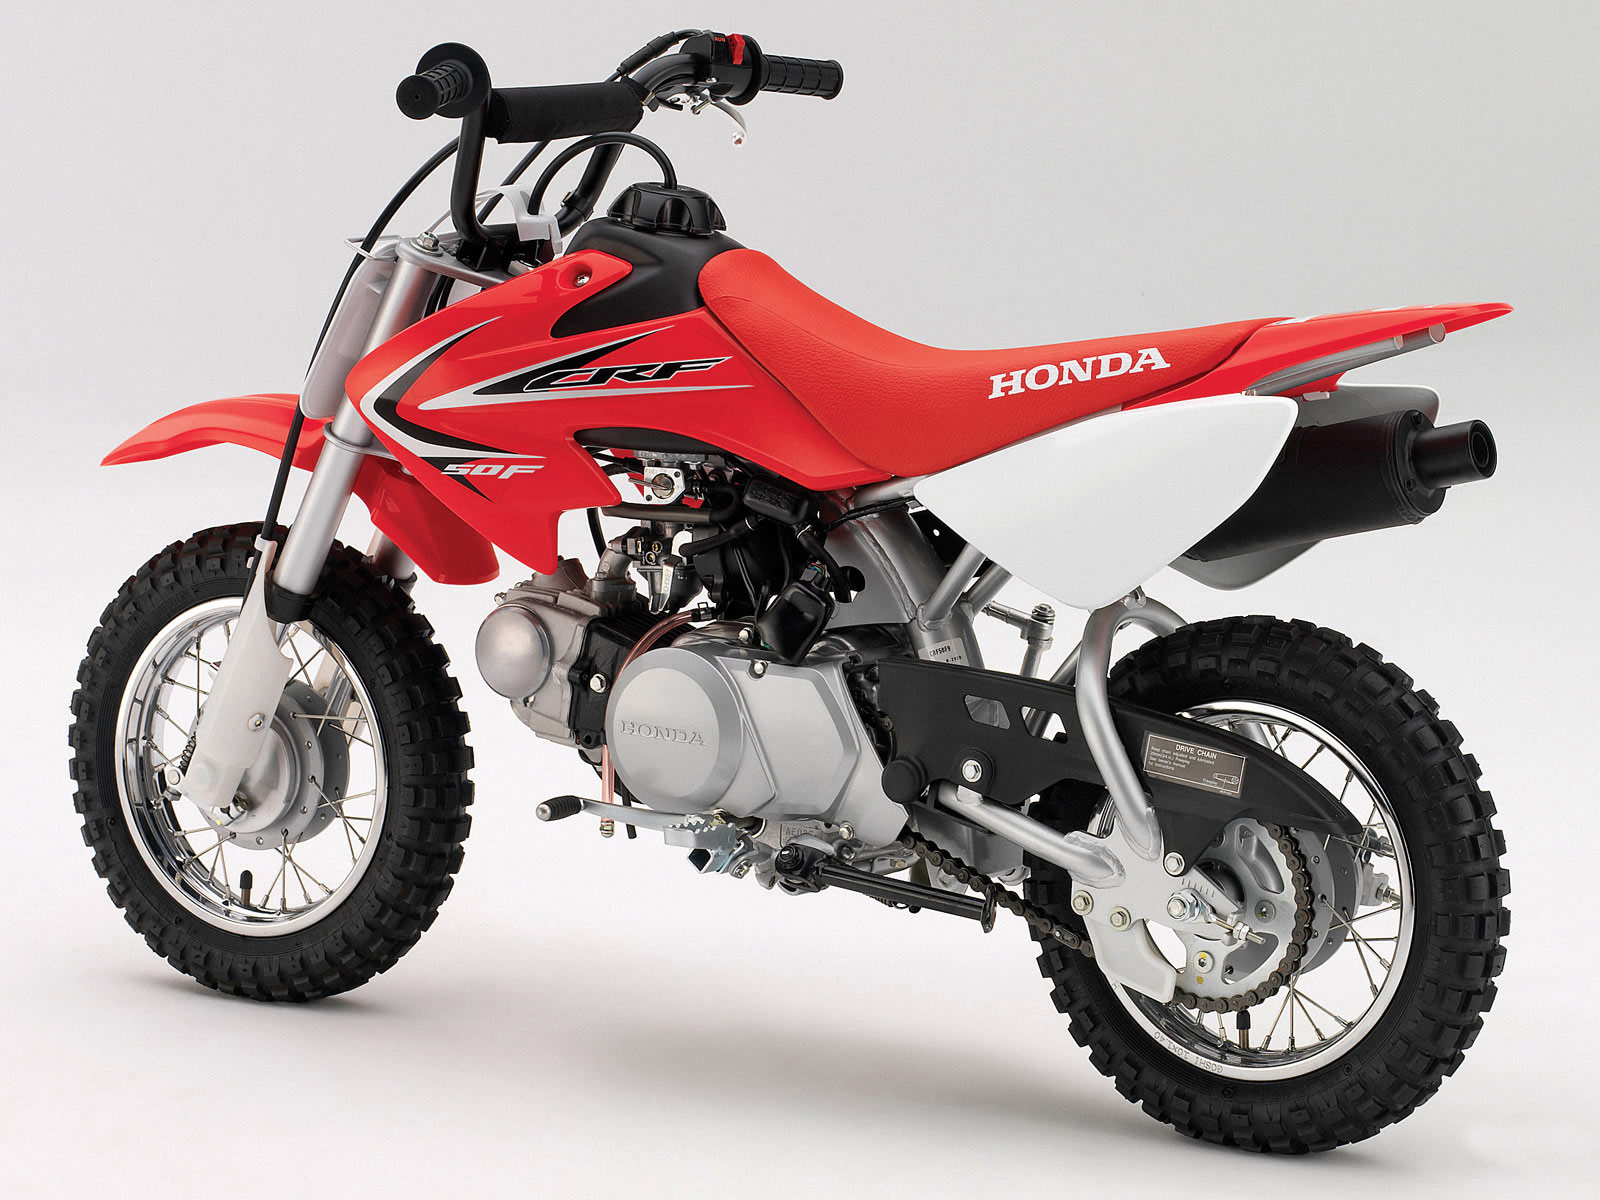 2011 Honda Crf50f Motorcycle Wallpapers Accident Lawyers